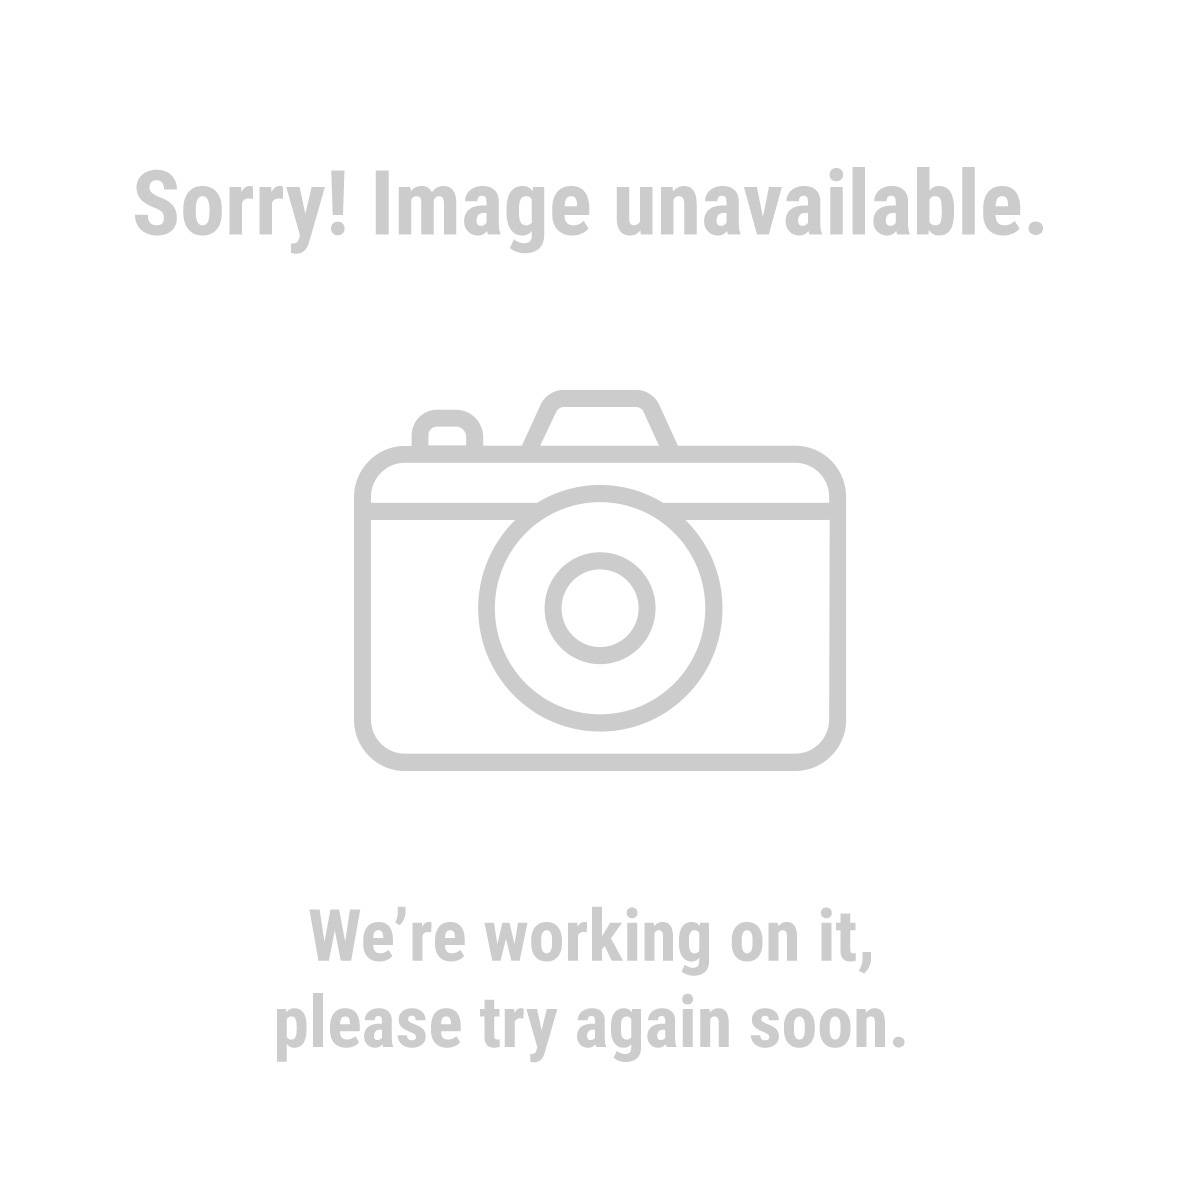 Central Pneumatic 93486 3 Oz. Mini Grease Gun